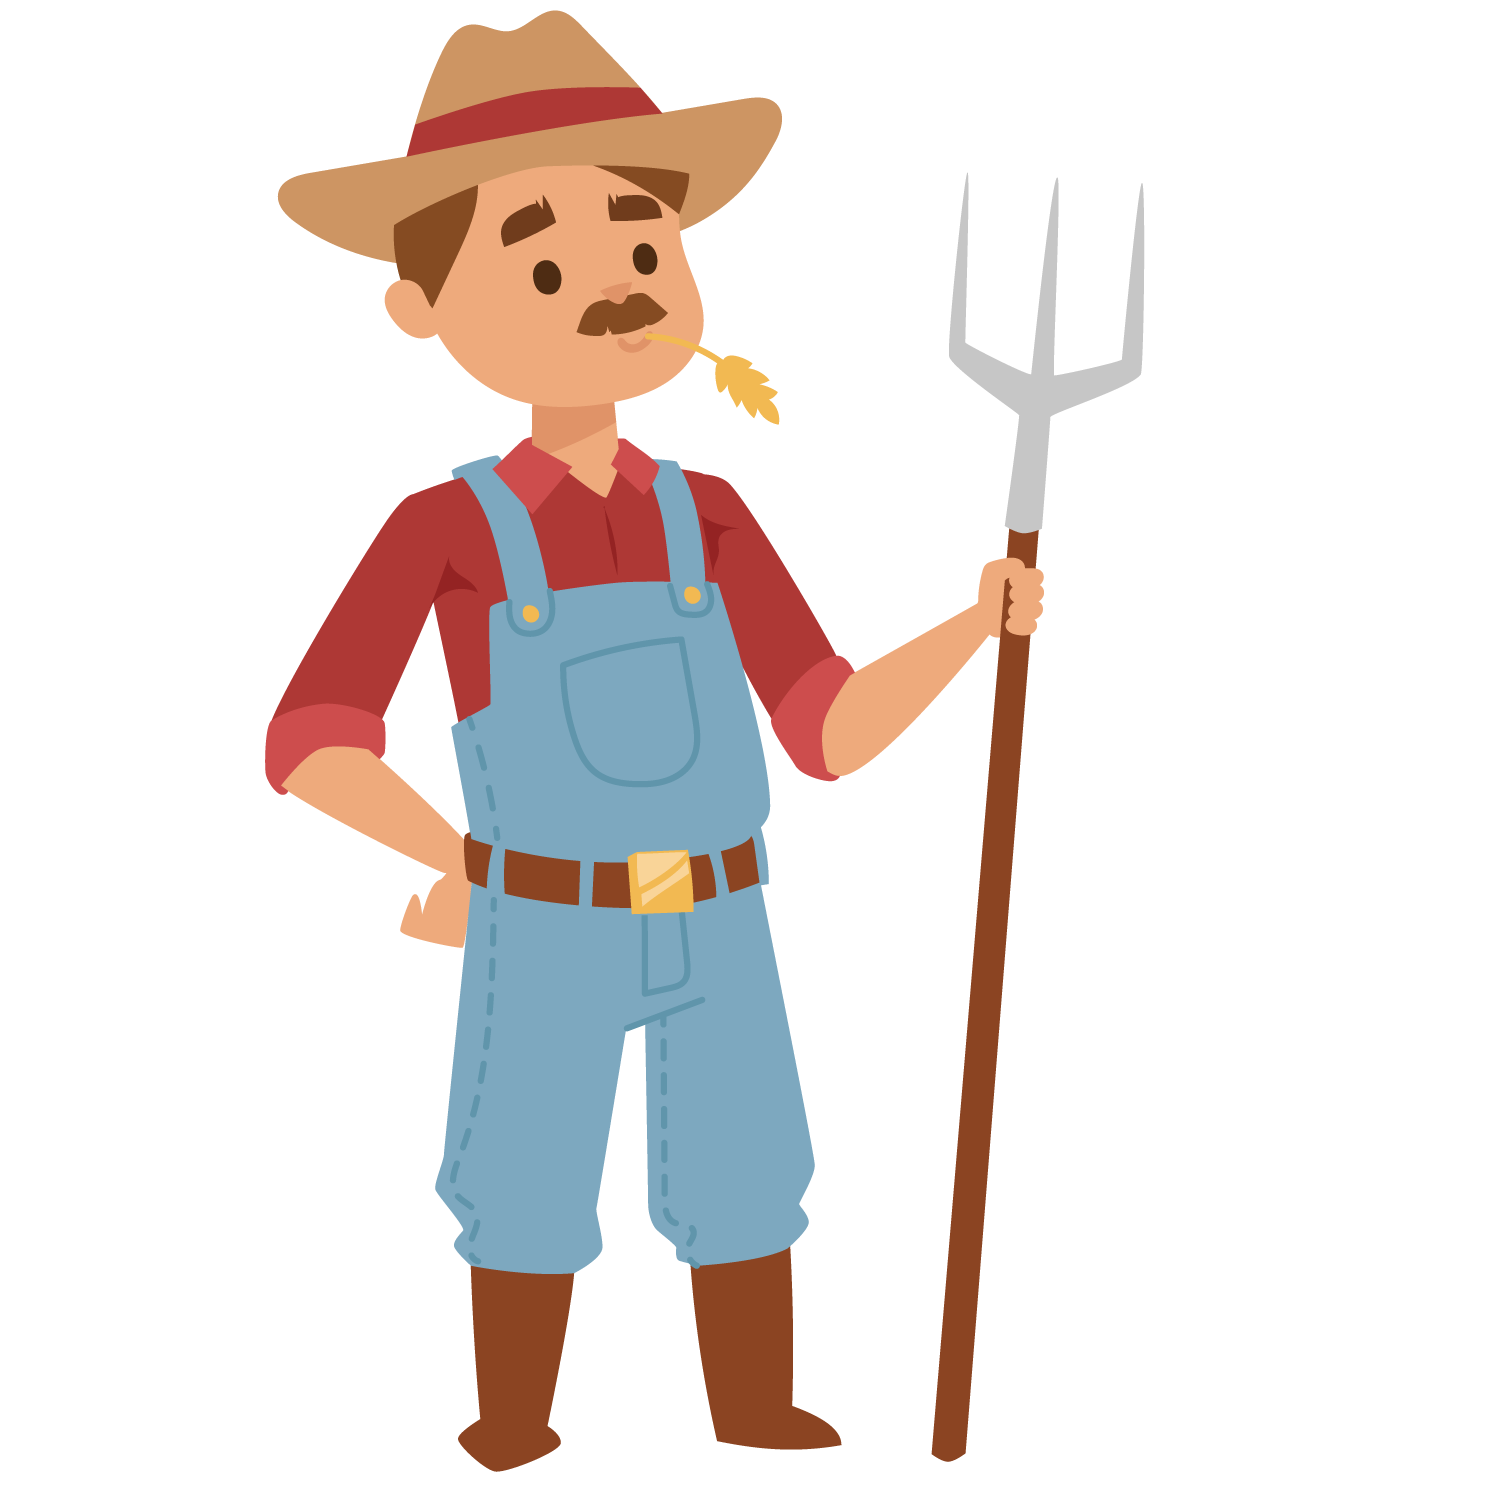 Farmer cartoon png. Agriculture holding the fork